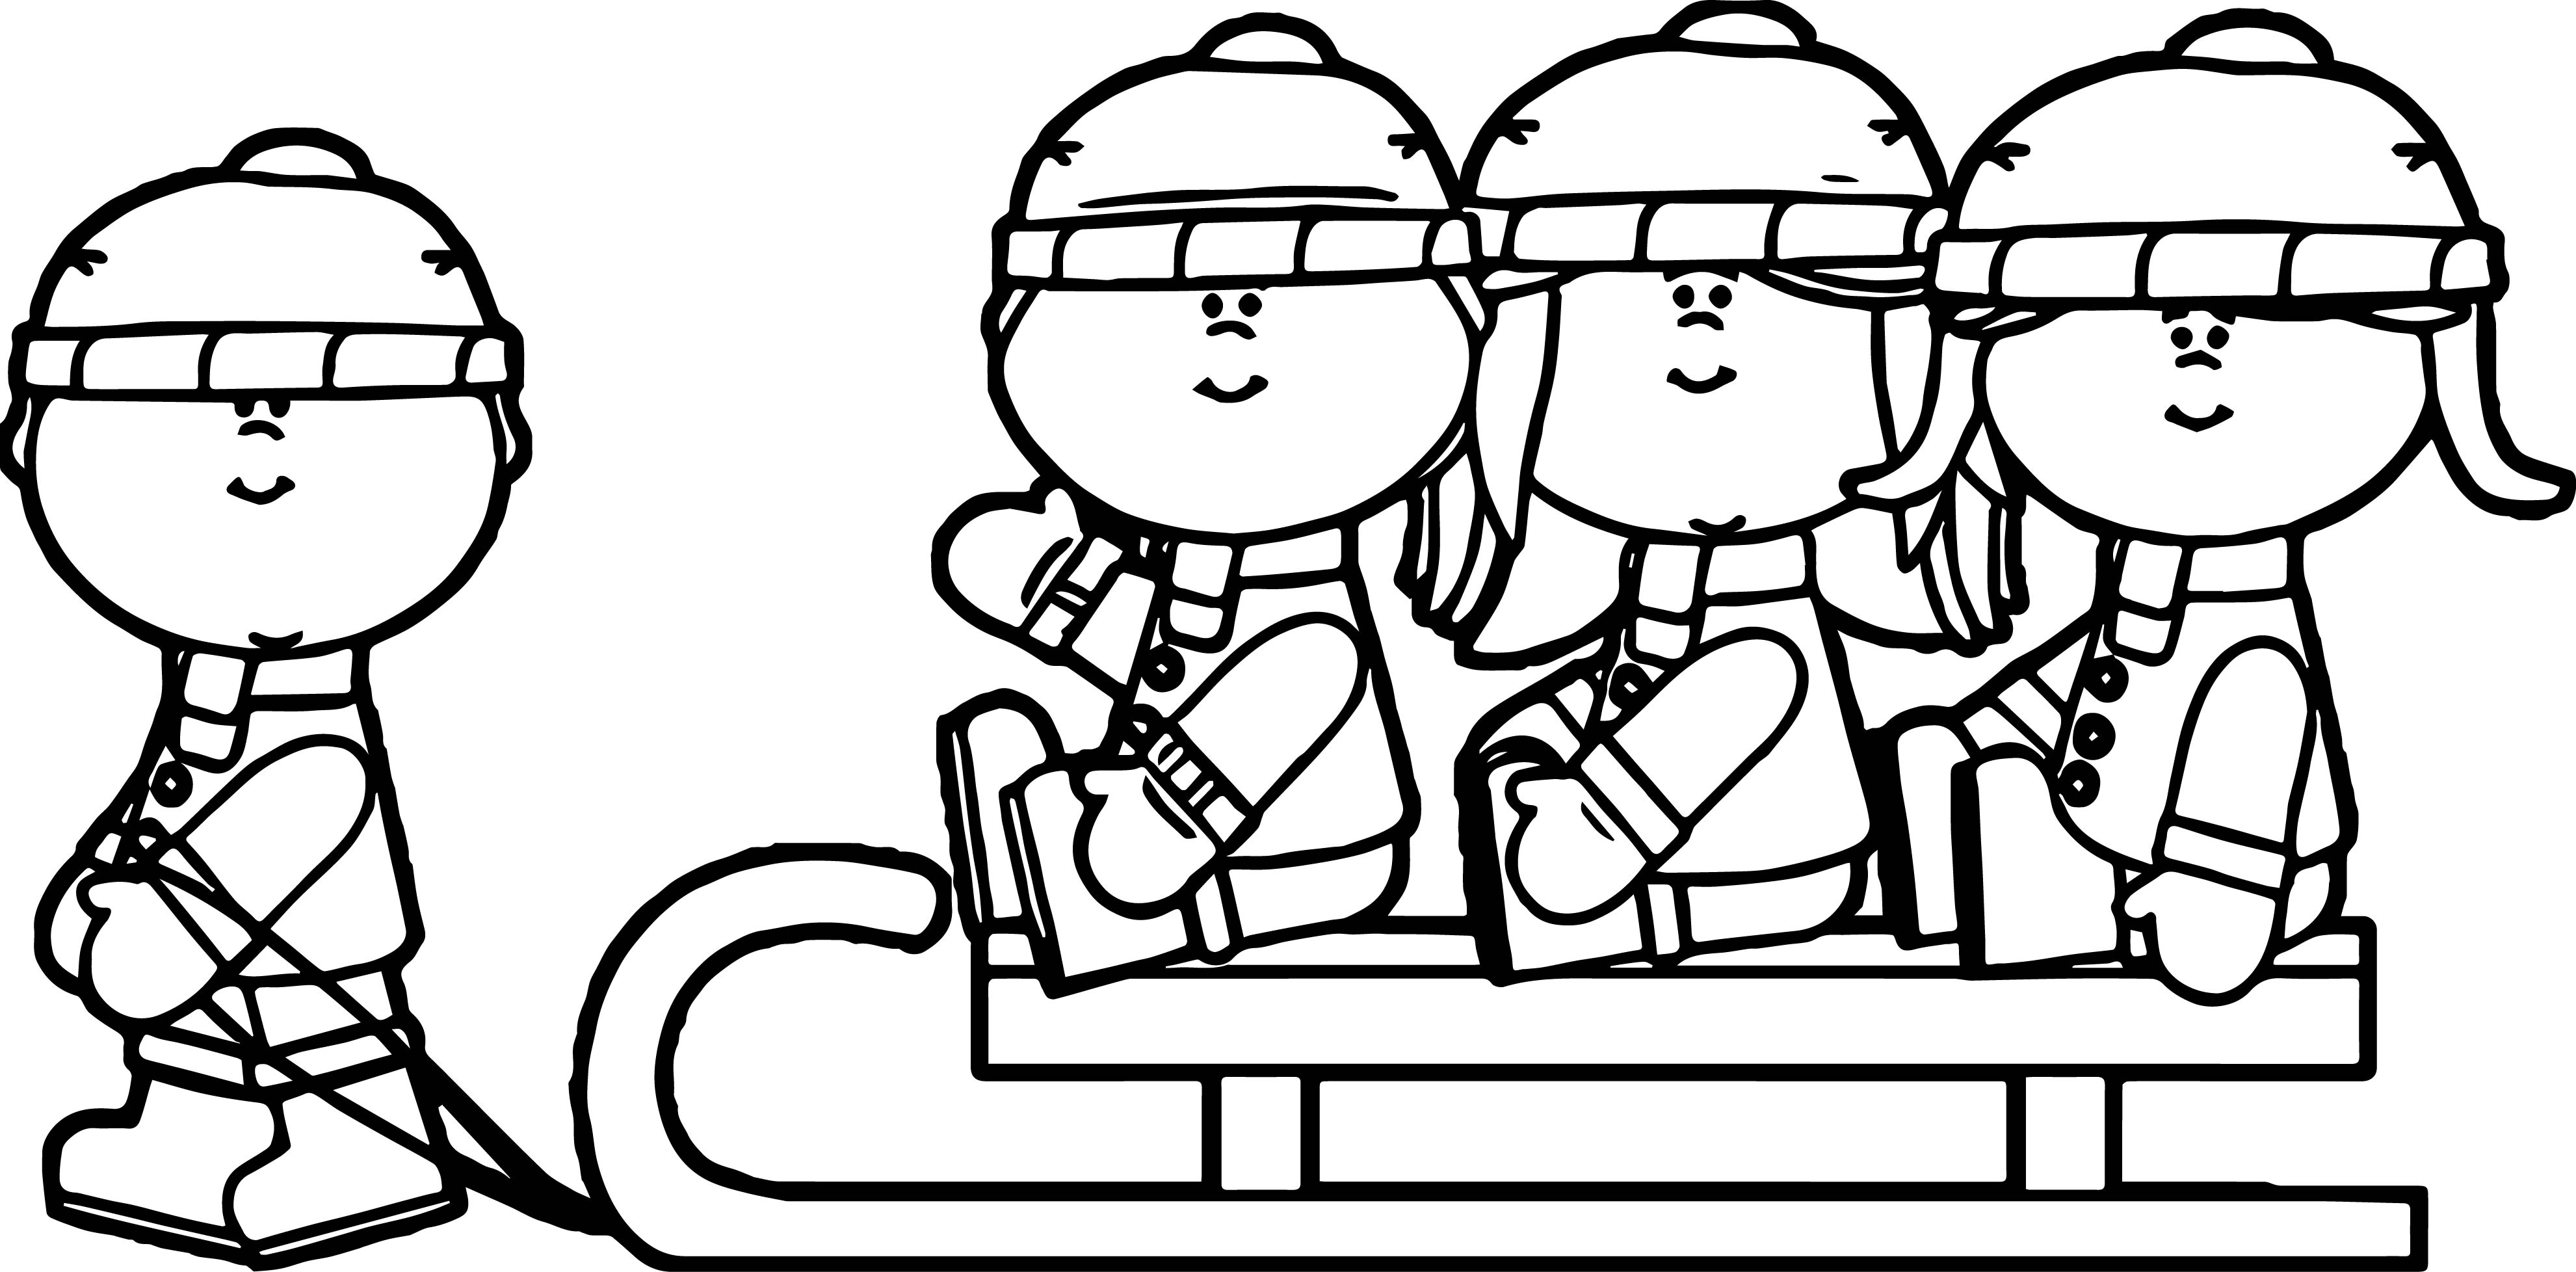 Winter kids on a sled coloring page for Sled coloring page